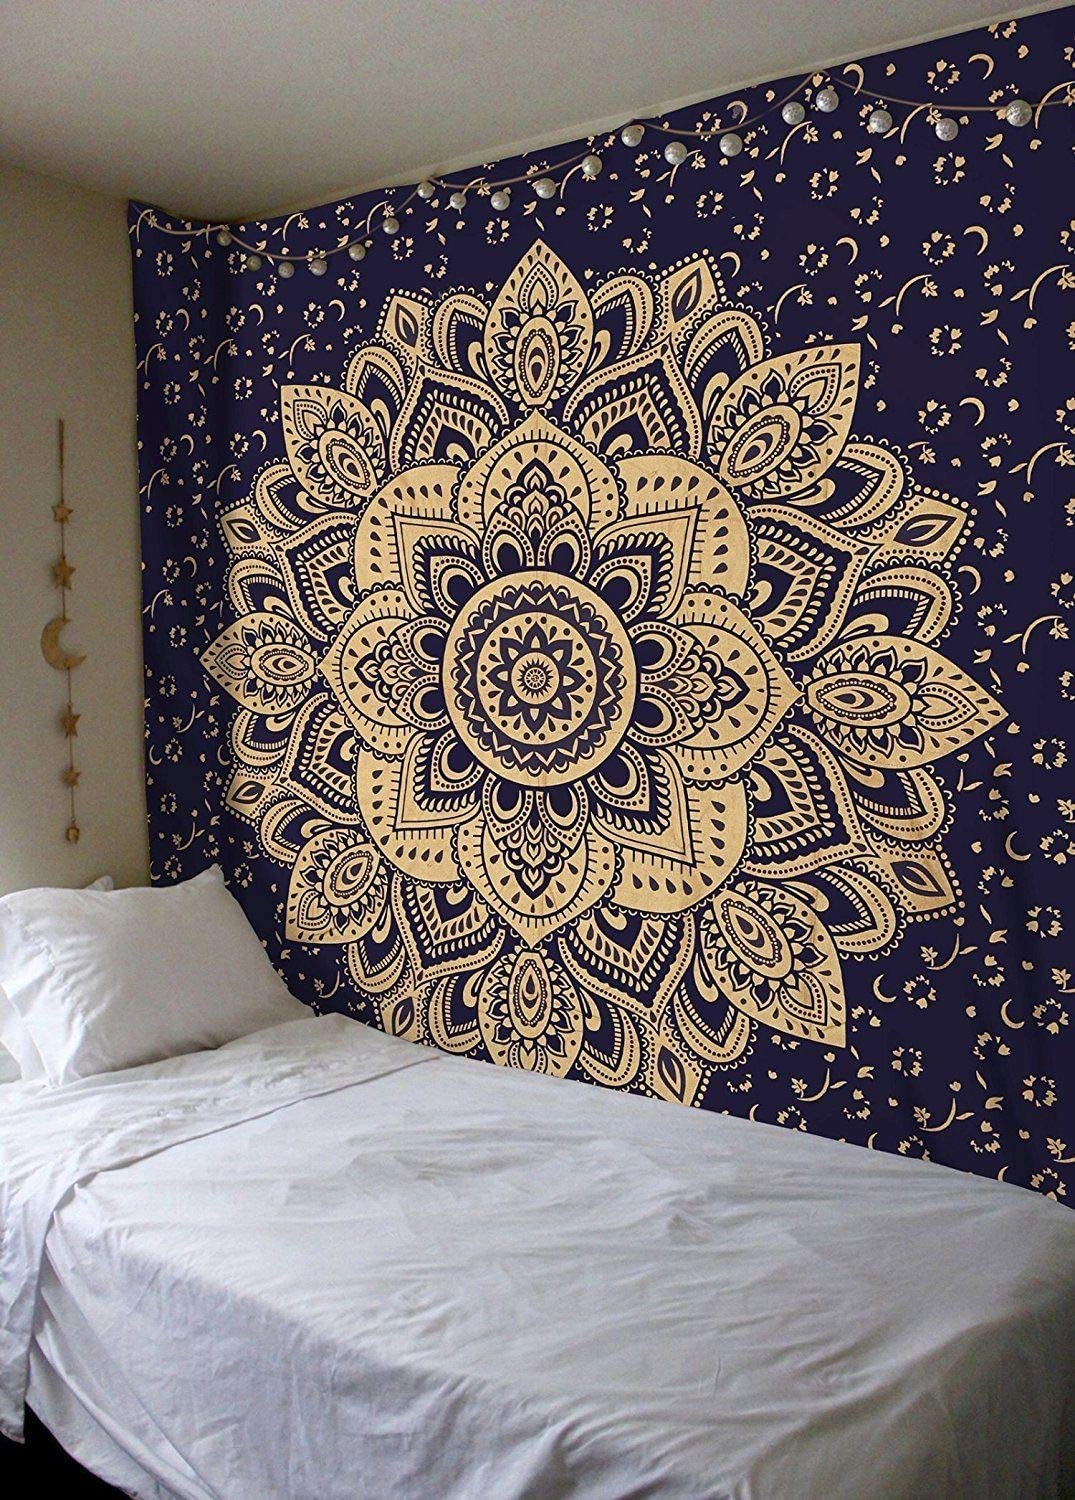 Royal Furnish Blue and Gold Tapestry Bohemian Mandala Bedspread Indian Hippie Tapestry Wall Hanging Bedding Tapestry Bedroom Bed Sheet Boho Bedspread Wall Decor Art (Queen, Blue & Gold) RHTB152